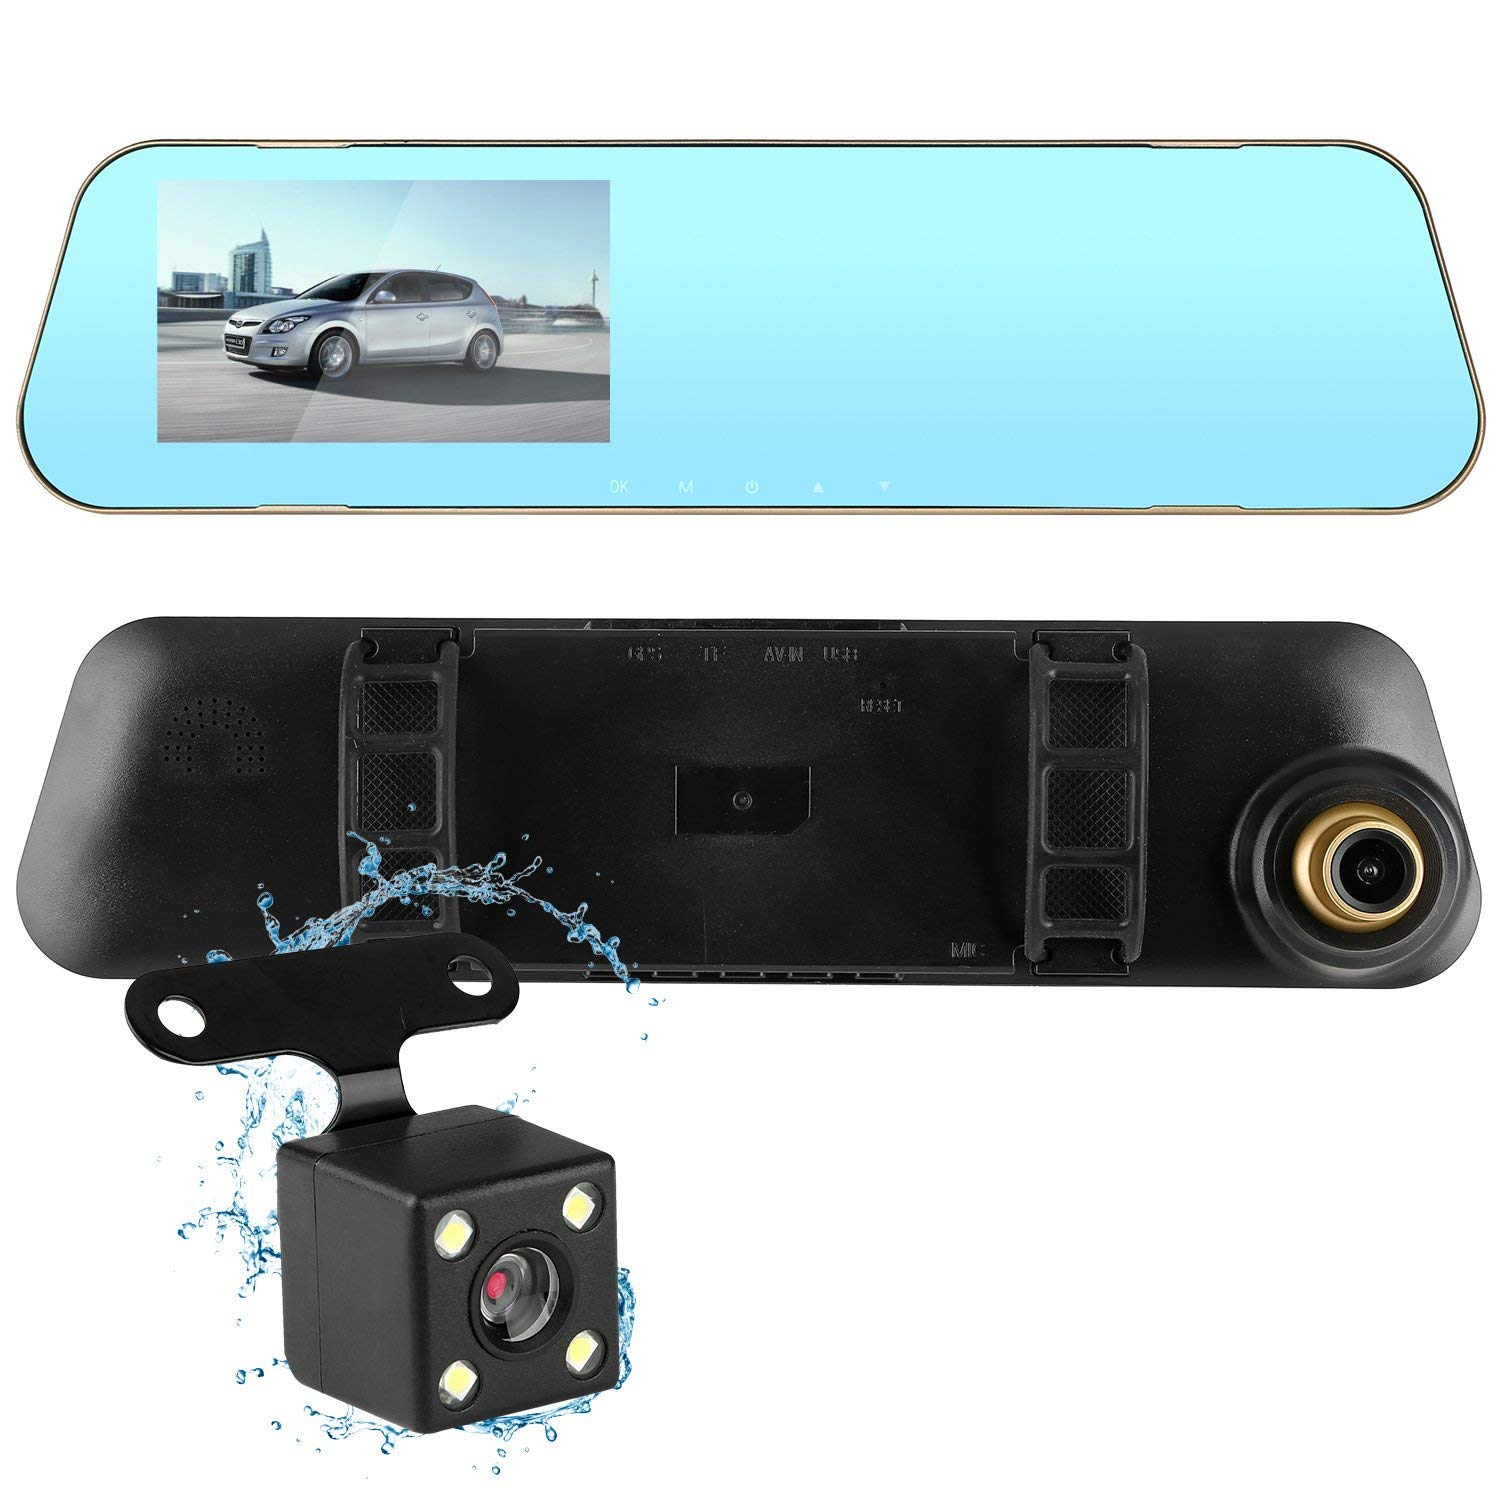 Emmako Dash Cam System Compatible SUV Truck Camper Car Backup Camera Front and Rear 1080P Full HD Dual Lens Video Recorder With G-Sensor Motion Detection Loop Recording Parking Mode 4.3 Inch Rear View